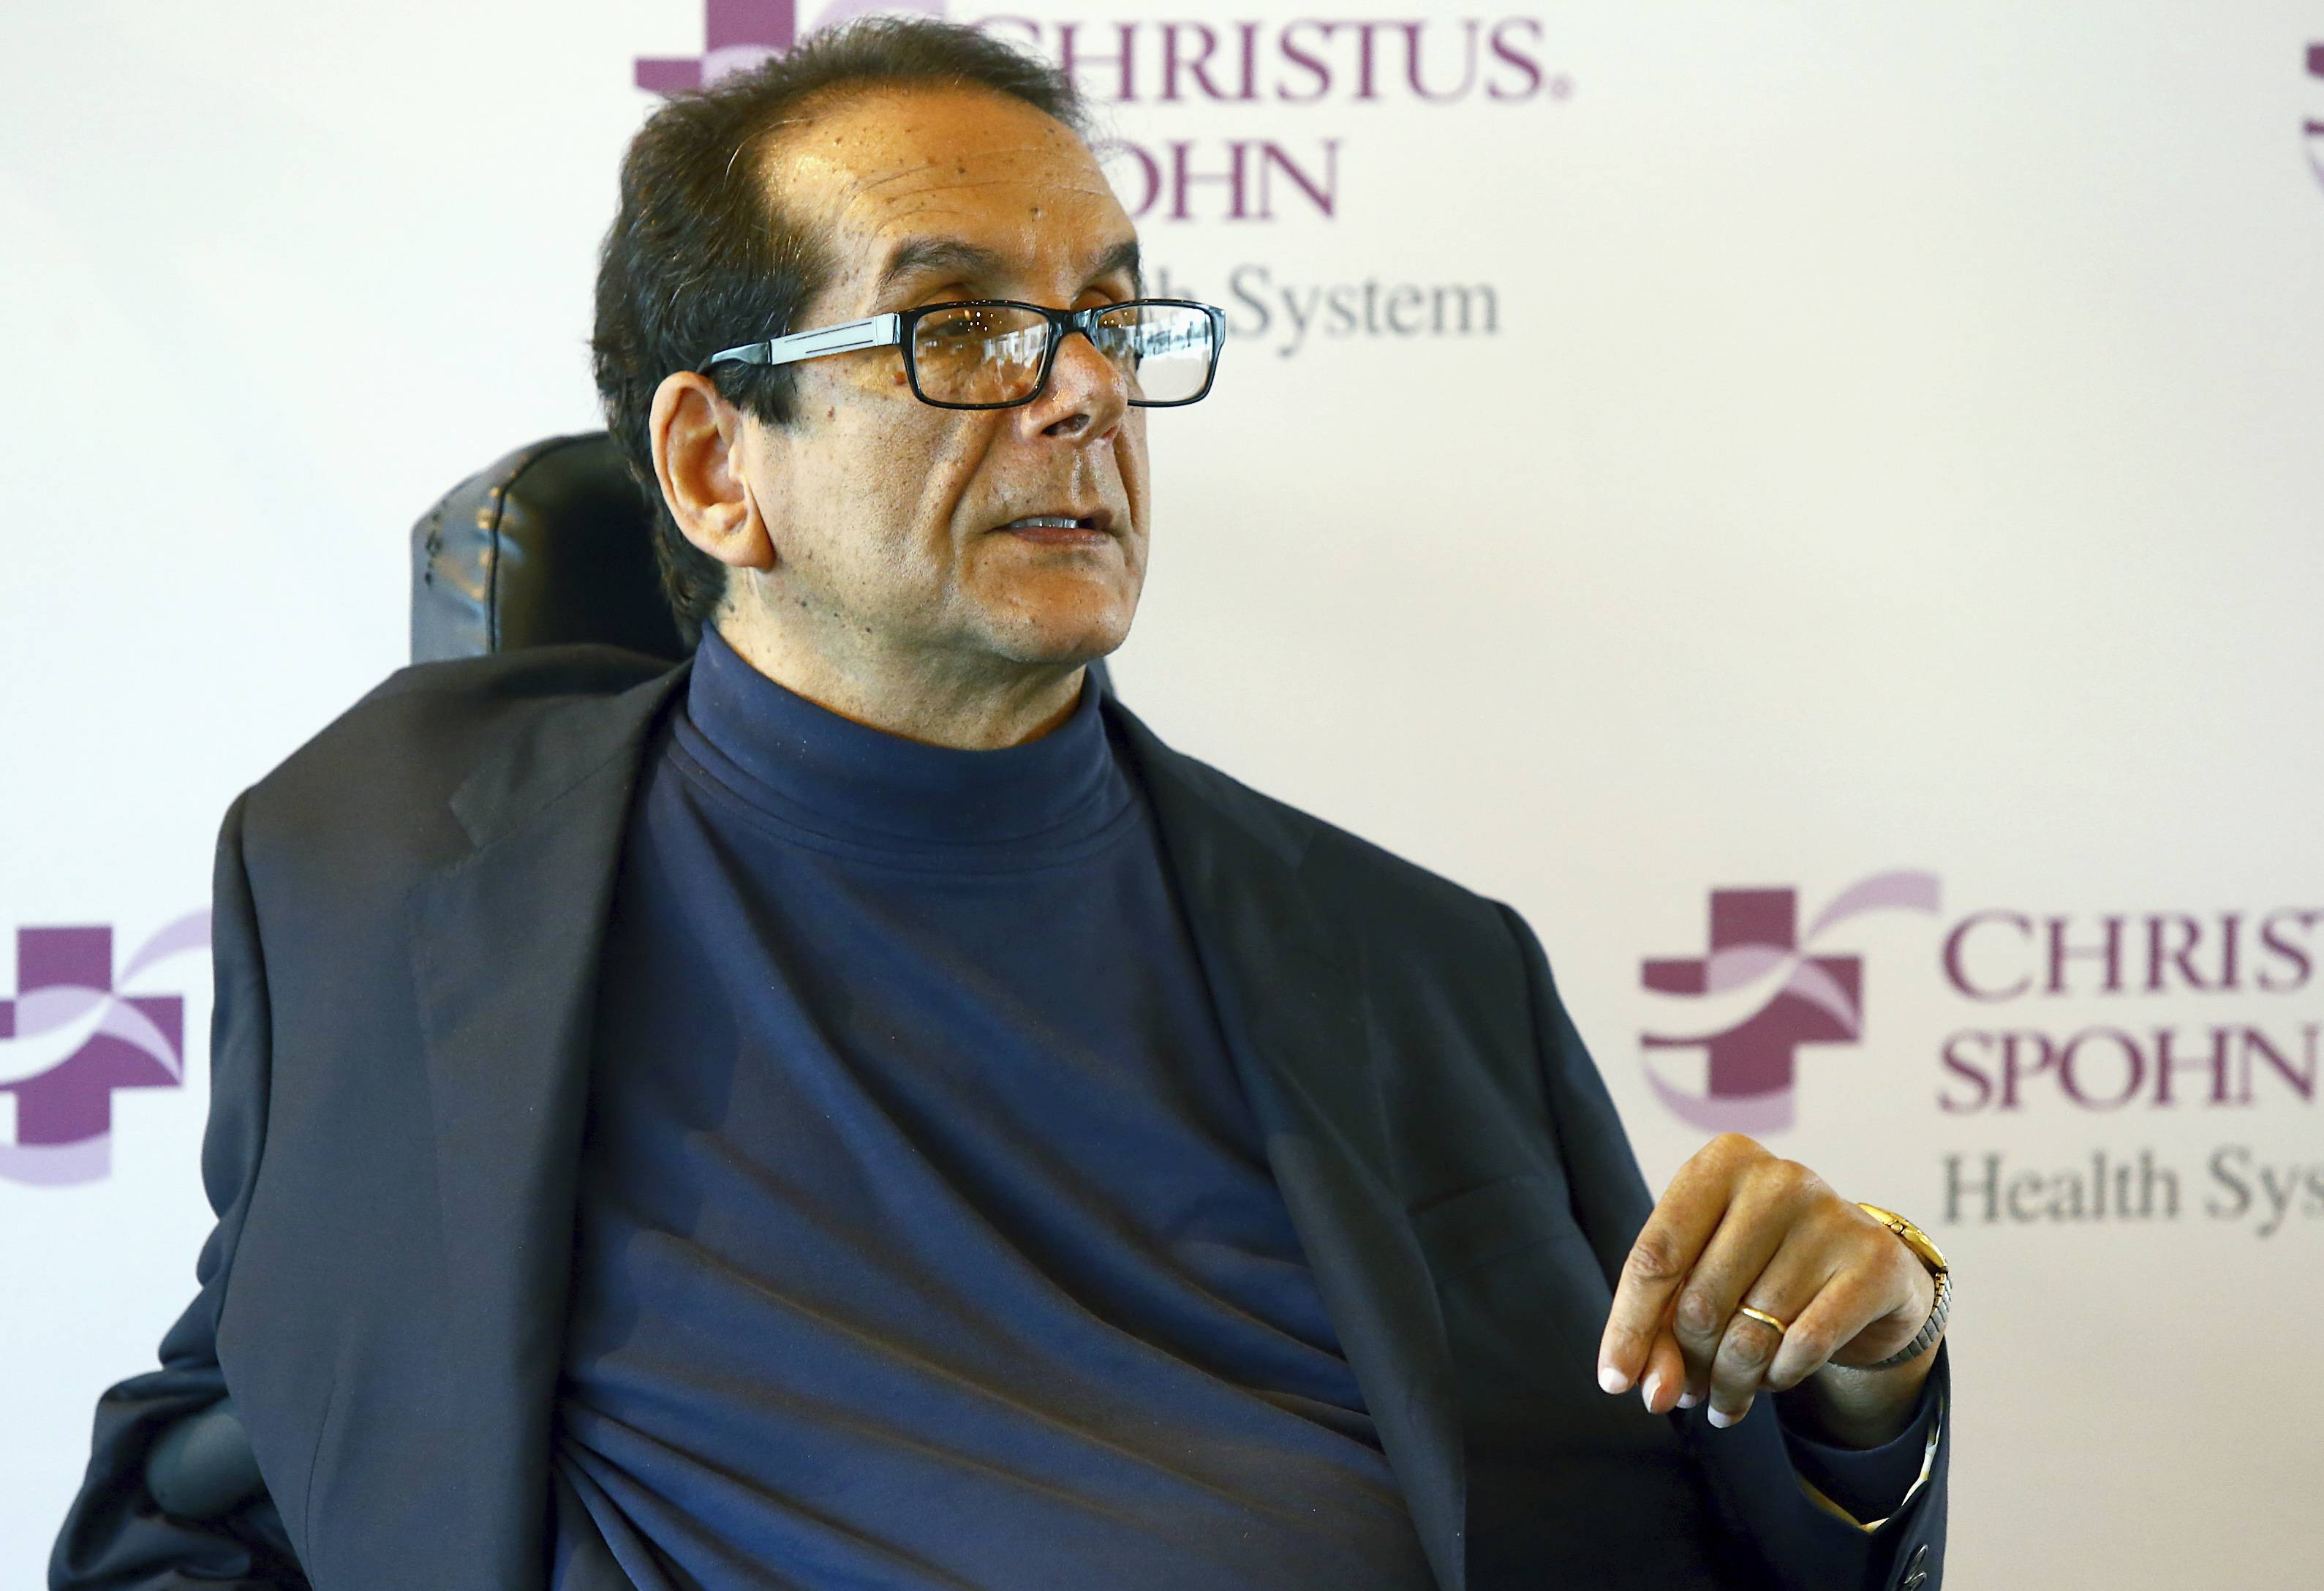 Longtime conservative columnist and broadcast commentator Charles Krauthammer, seen here in March 2015, died from cancer Thursday at age 68.